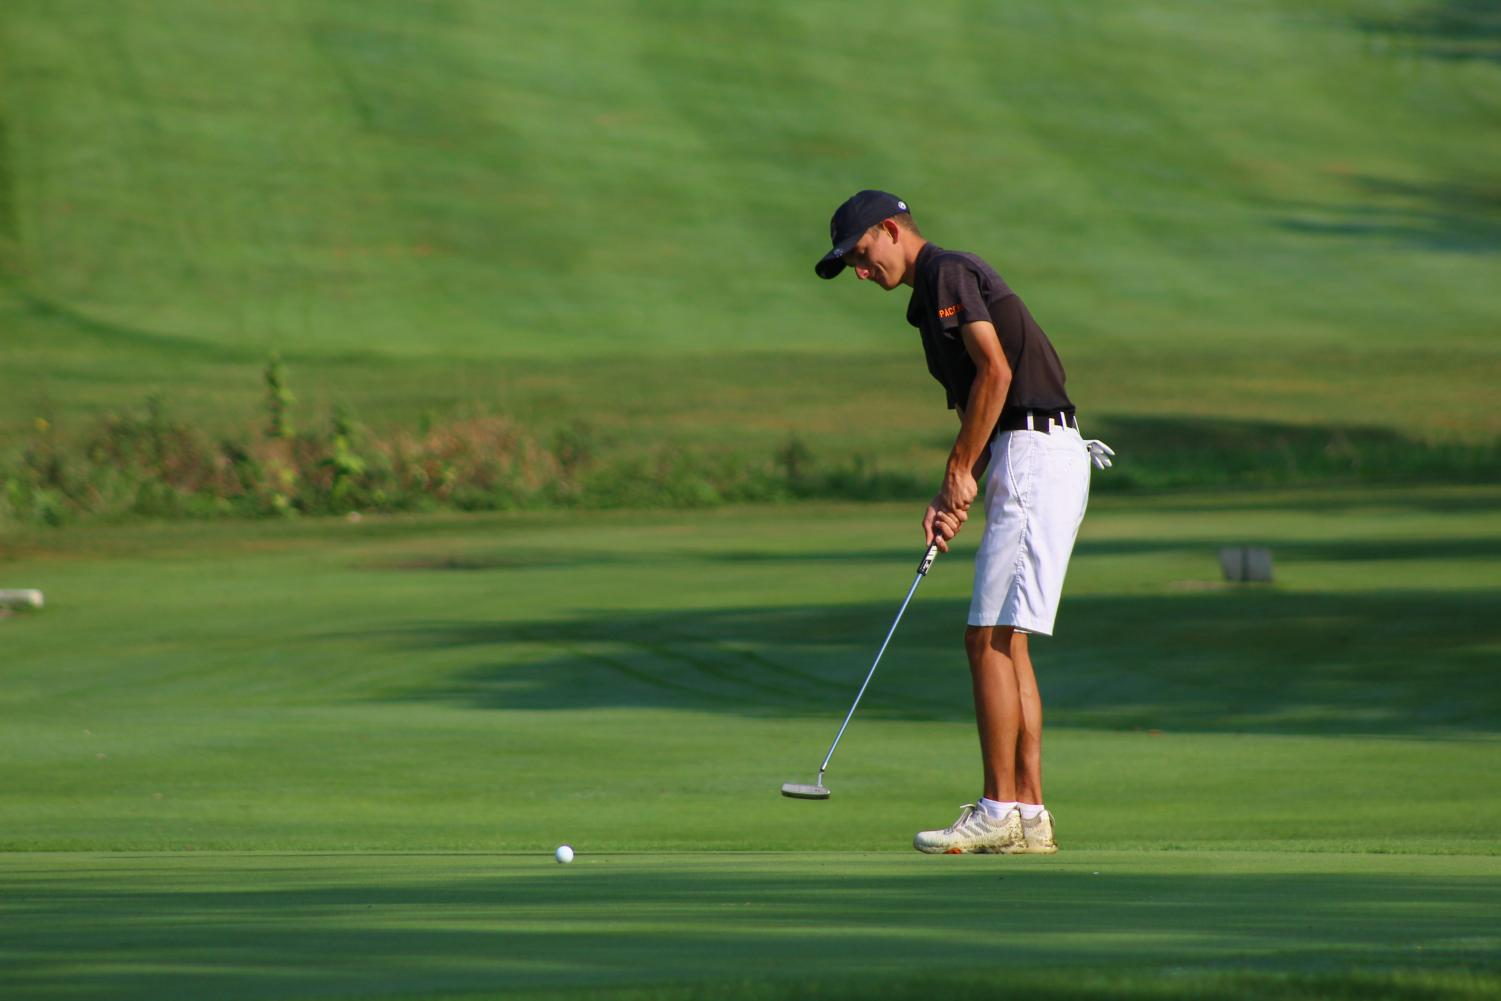 Varsity+Boys+Golf+comes+out+on+top+in+the+Marion+Harding+Invitational